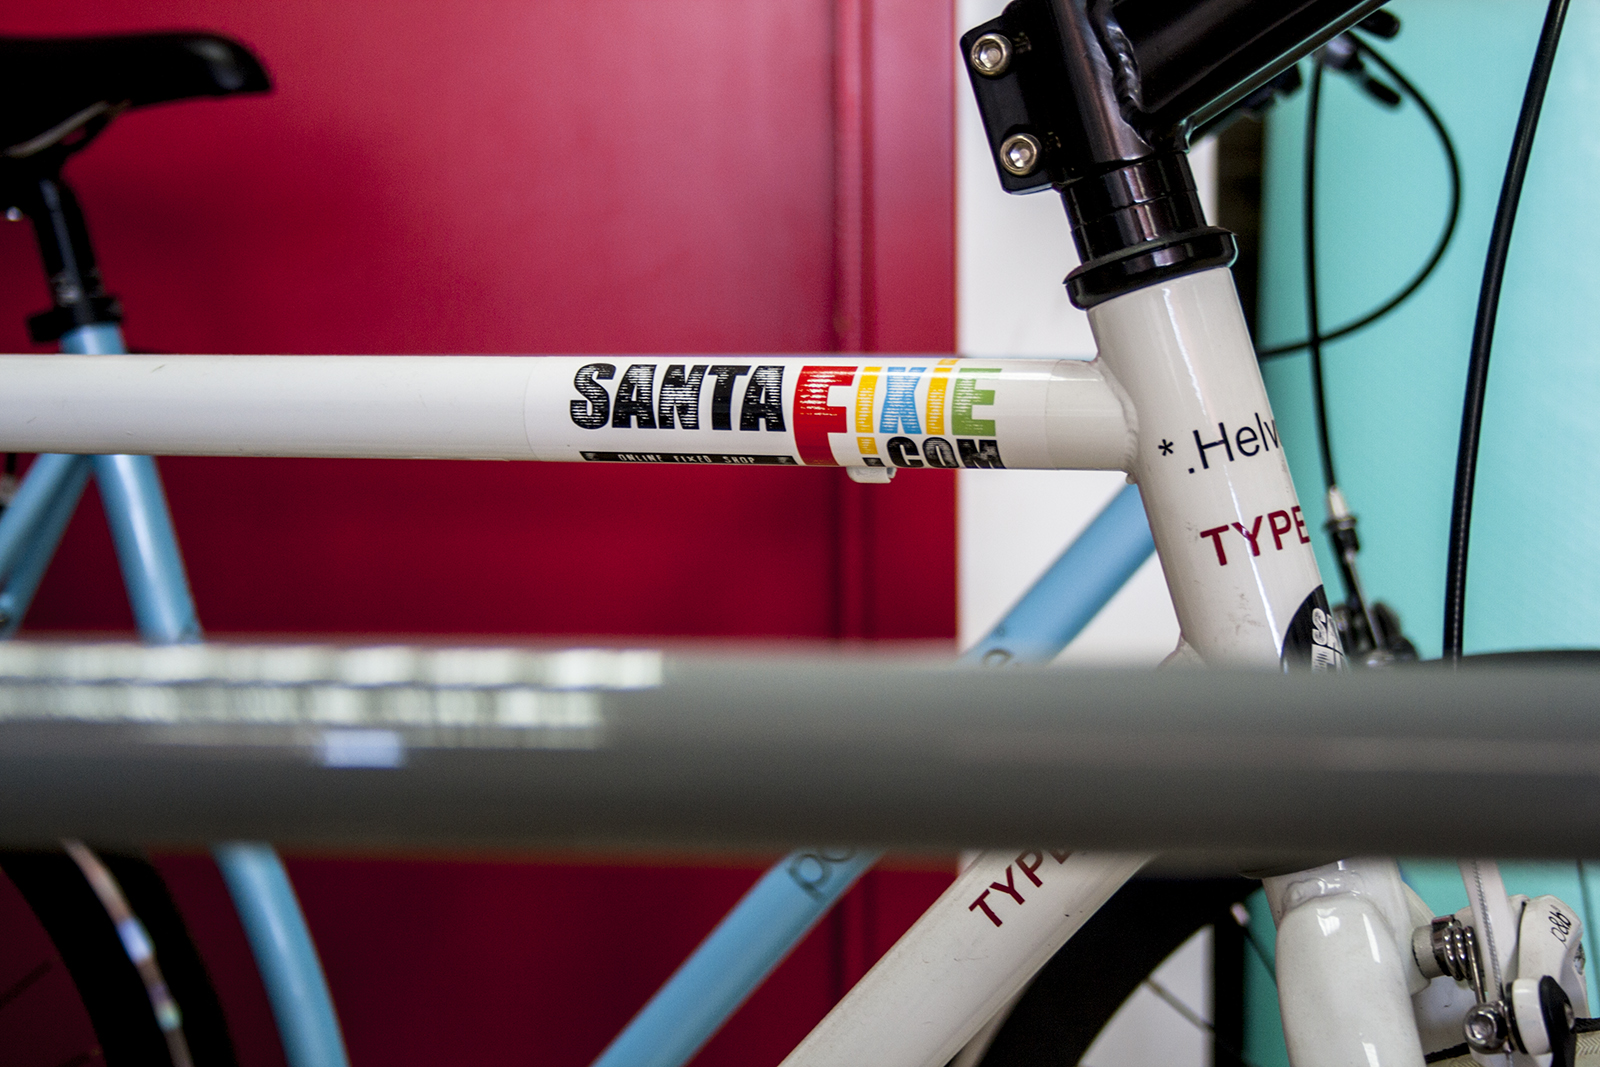 santafixie fixed bike